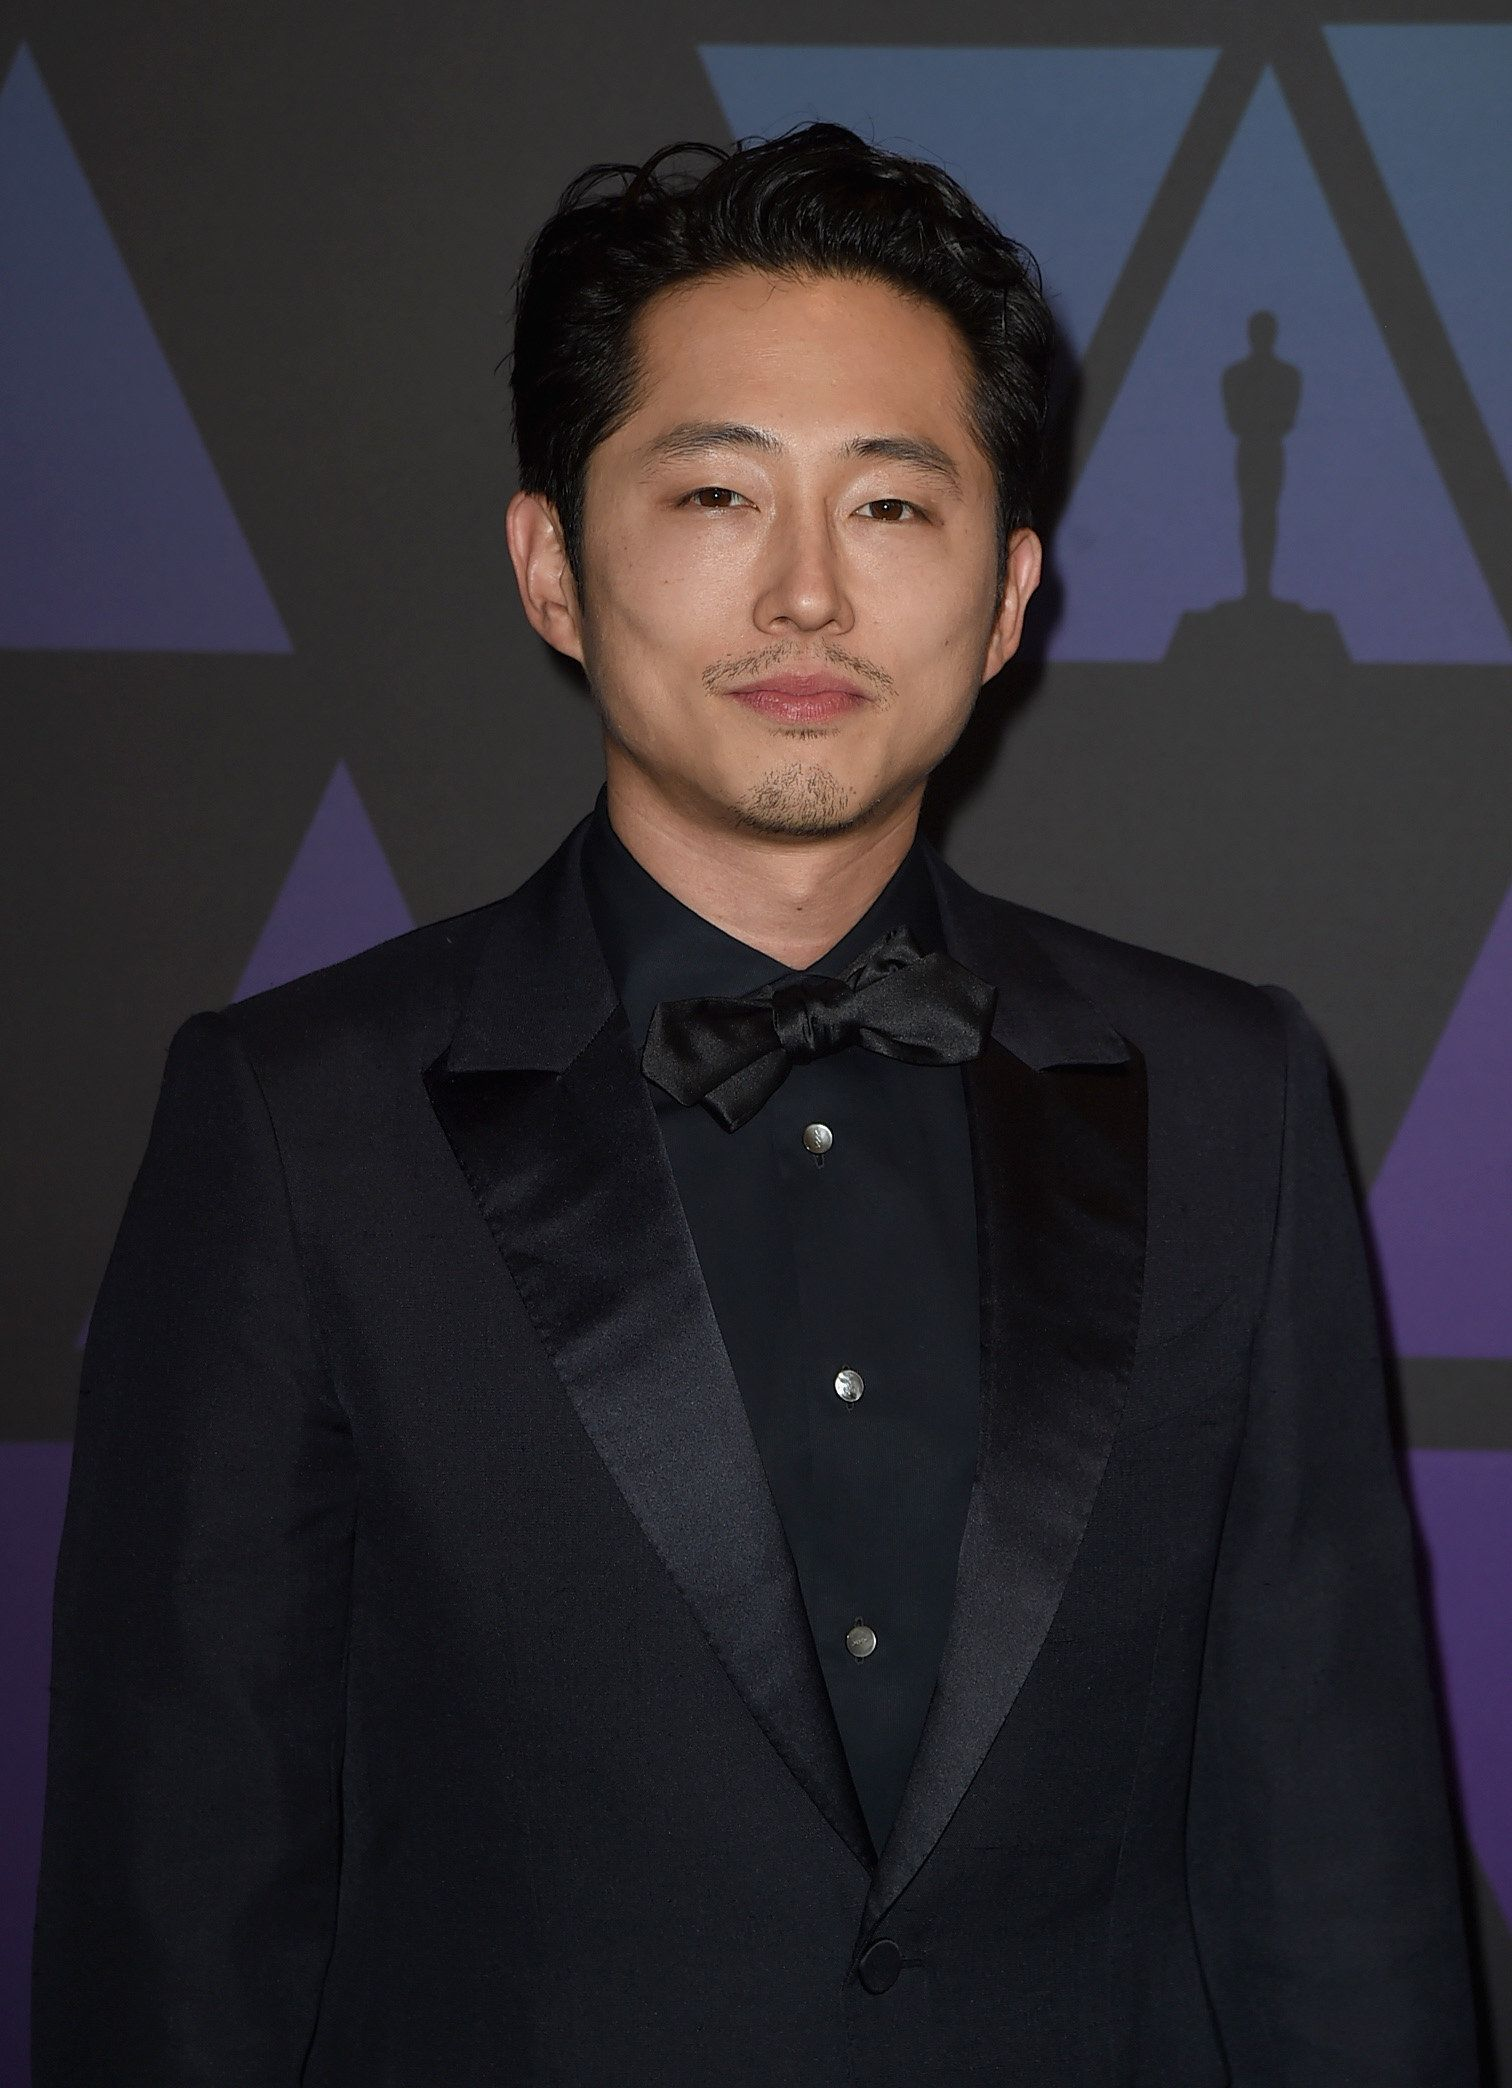 HOLLYWOOD, CA - NOVEMBER 18:  Steven Yeun attends the Academy of Motion Picture Arts and Sciences' 10th annual Governors Awards at The Ray Dolby Ballroom at Hollywood & Highland Center on November 18, 2018 in Hollywood, California.  (Photo by Kevin Winter/Getty Images)